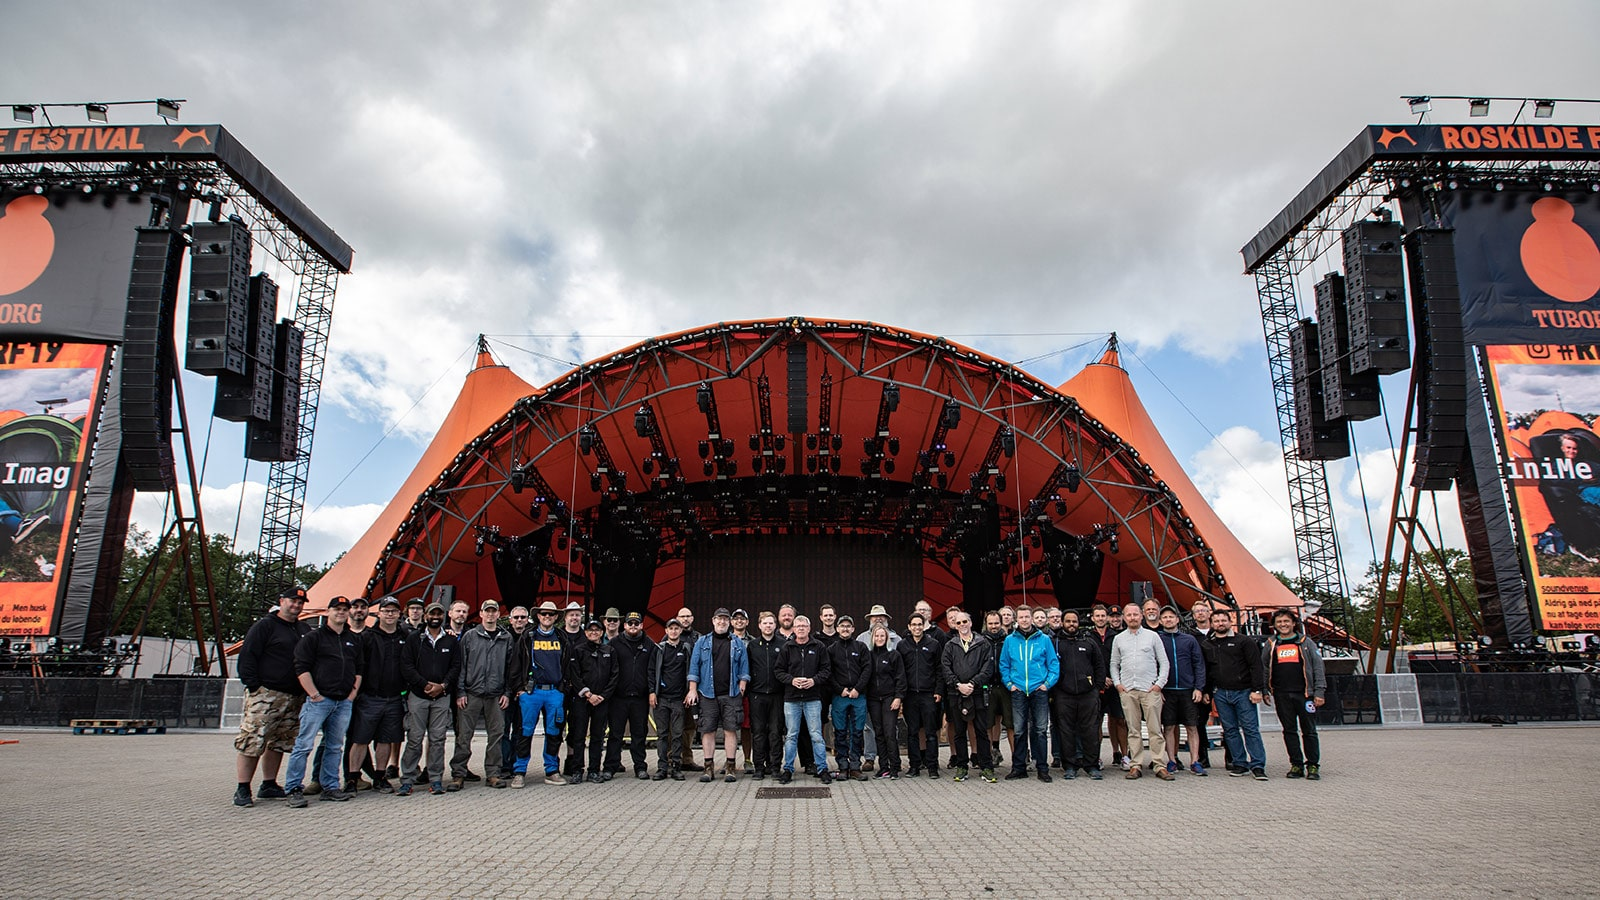 Meyer Sound, Bright Group, and Roskilde Festival Technical Crew